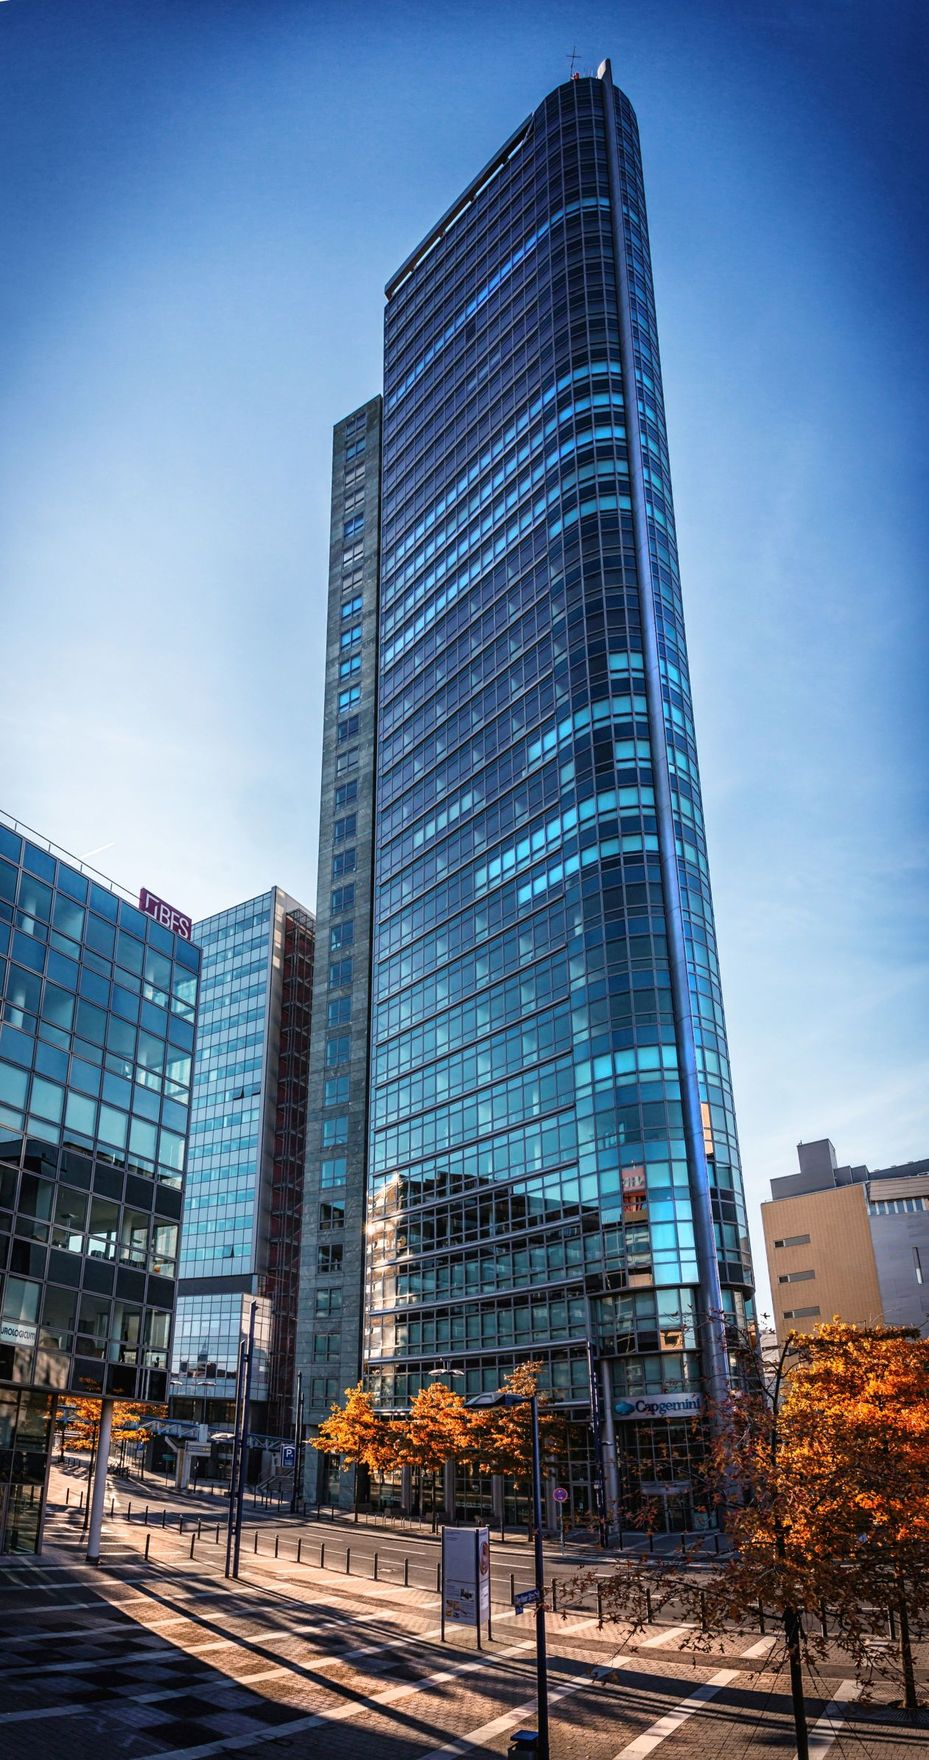 Offenbach publicity ag kauft den city tower for Immobilien offenbach